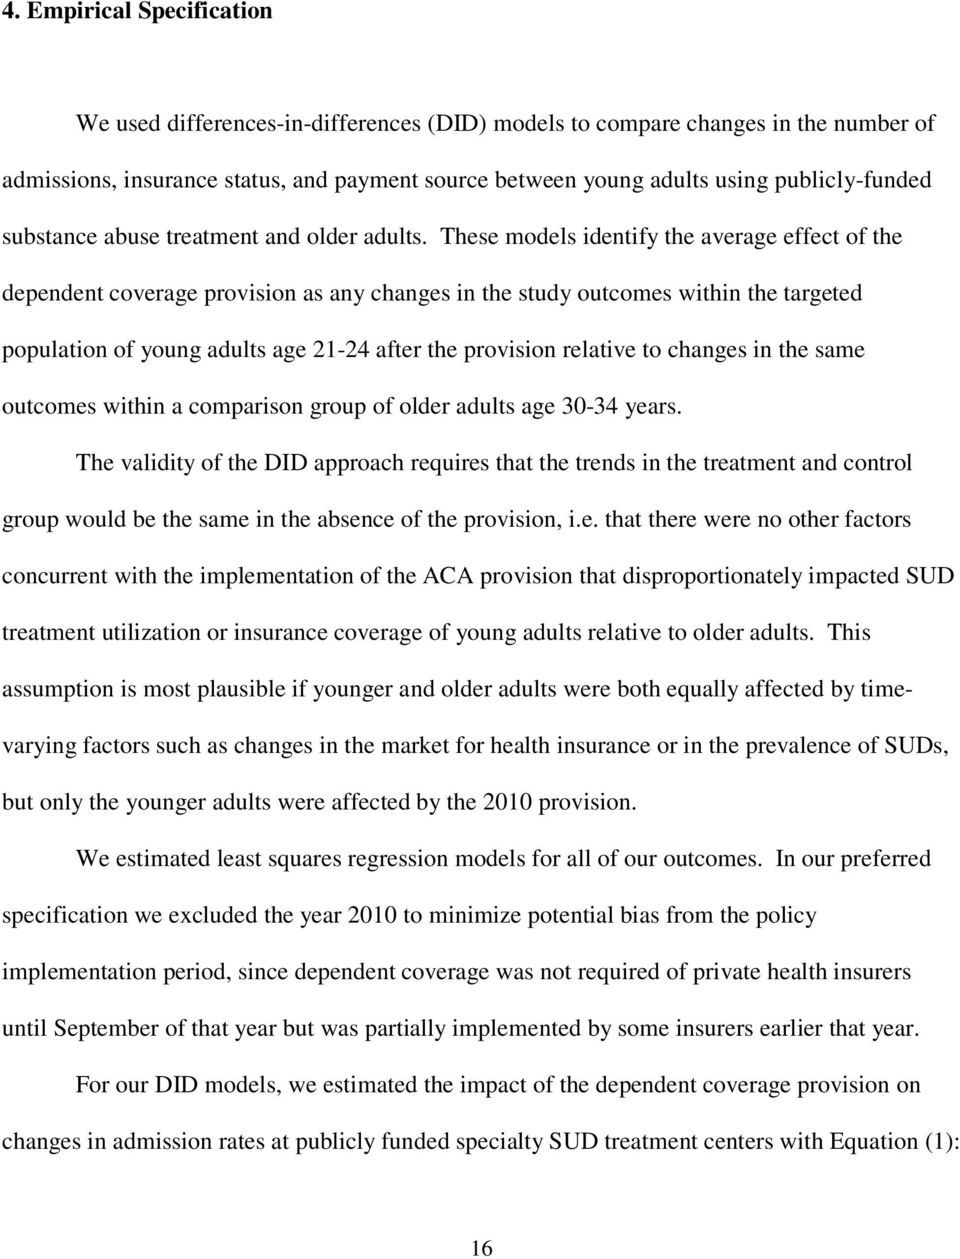 These models identify the average effect of the dependent coverage provision as any changes in the study outcomes within the targeted population of young adults age 21-24 after the provision relative